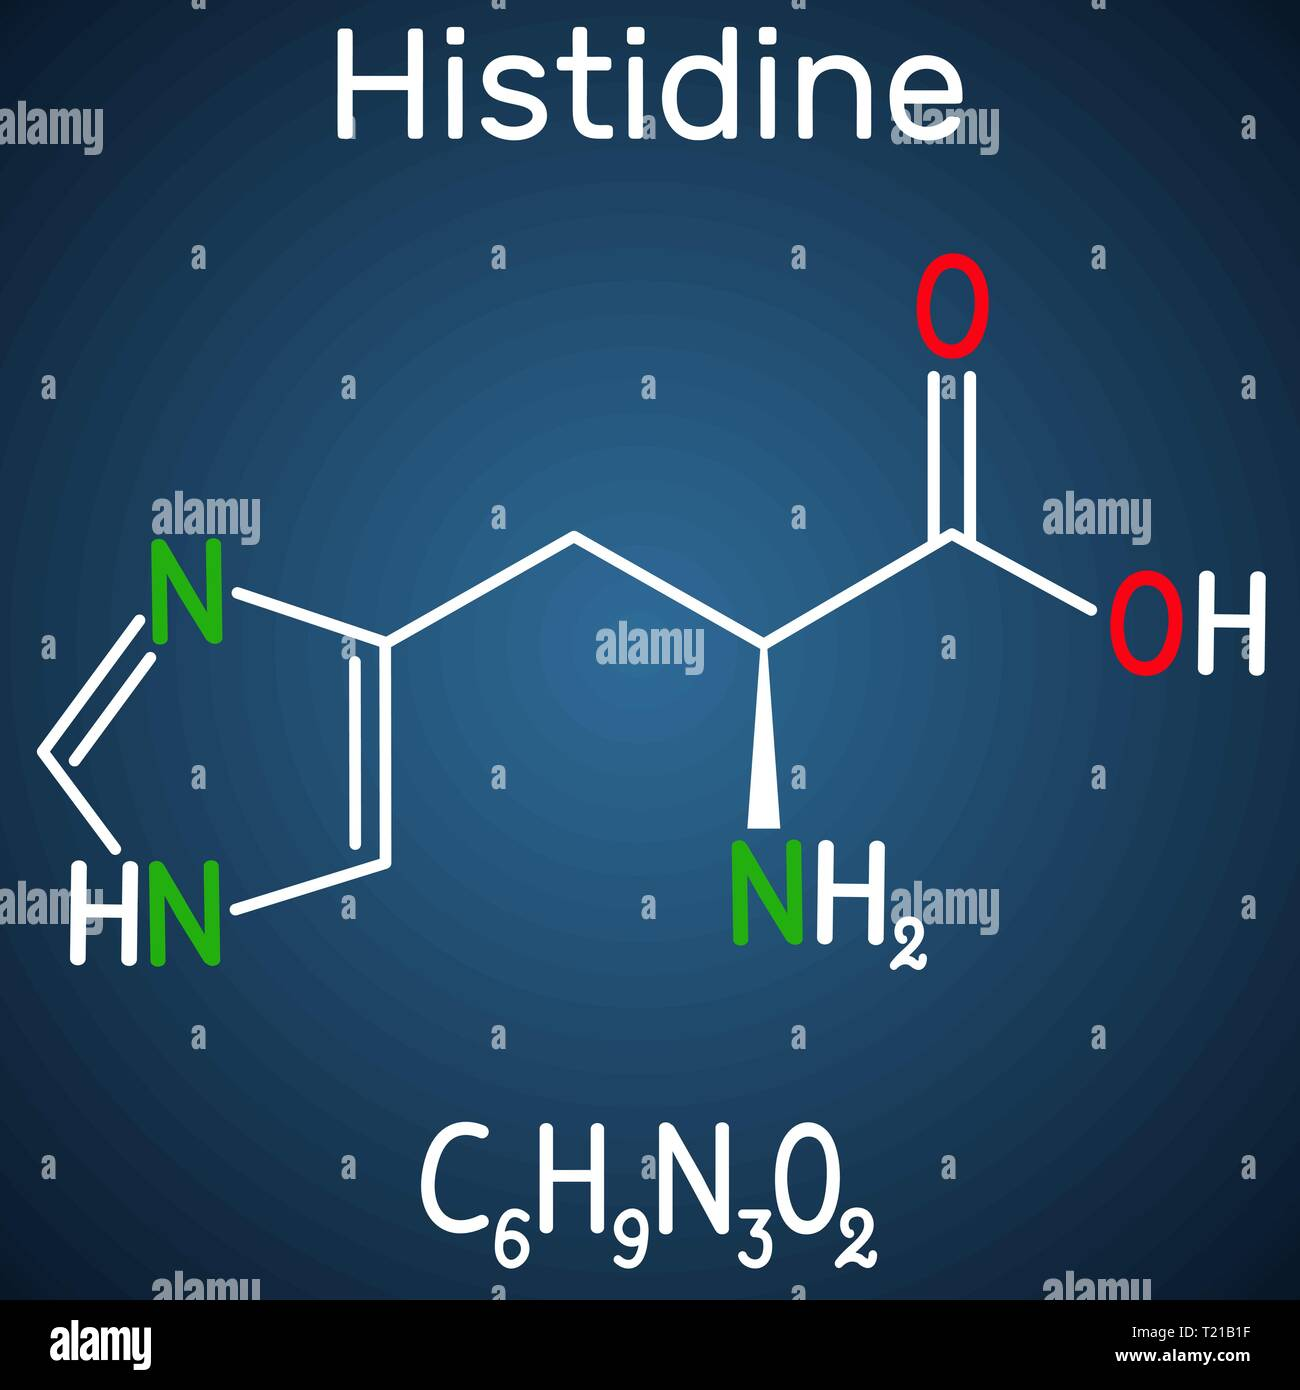 Histidine (L- histidine, His, H) amino acid molecule. It is used in the biosynthesis of proteins. Structural chemical formula on the dark blue backgro - Stock Image